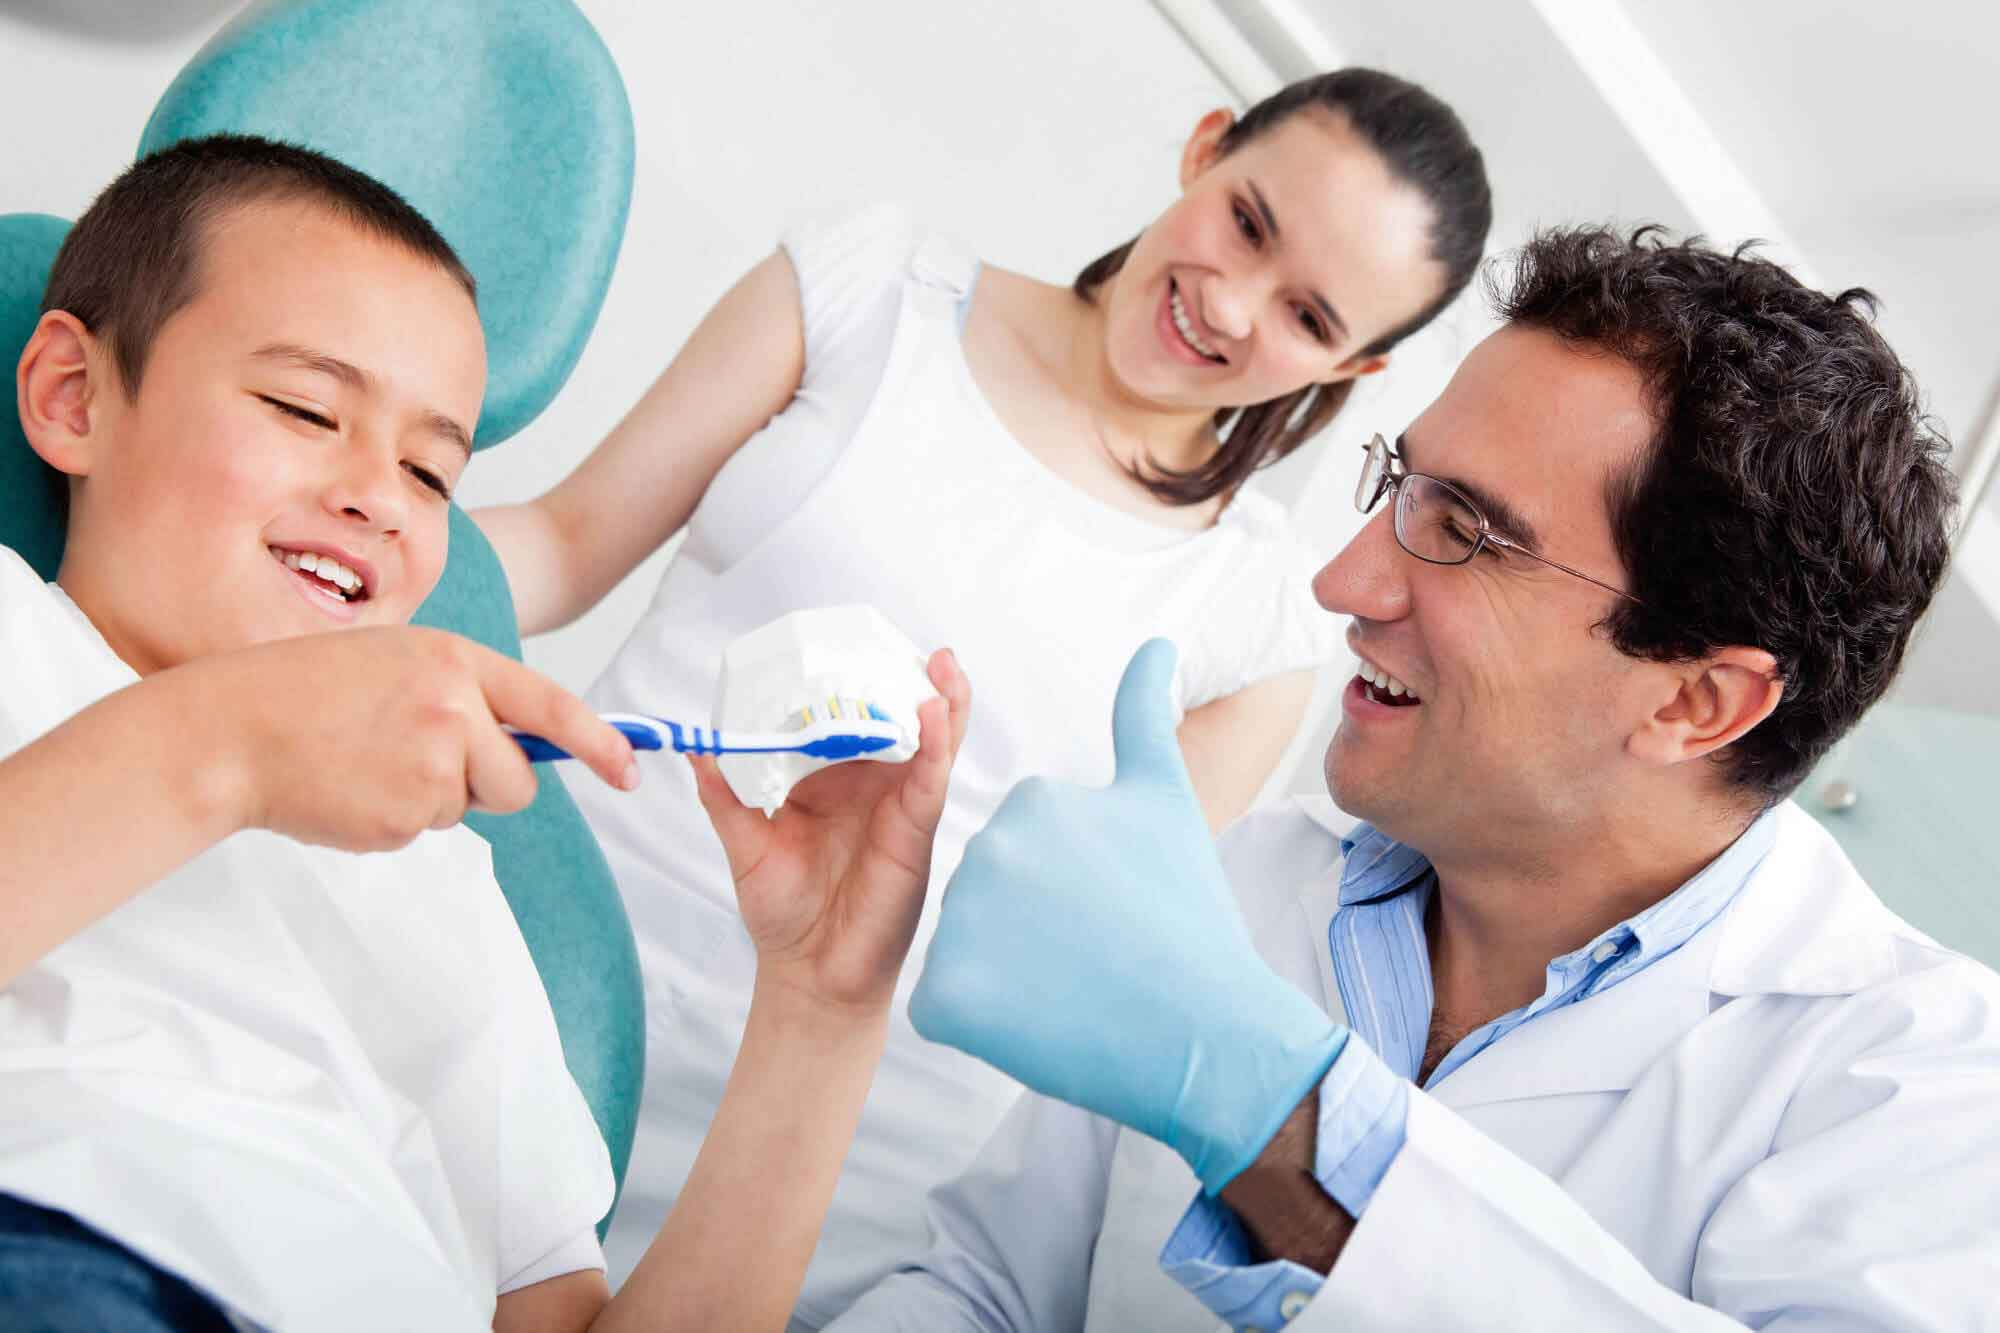 How To Find The Best Pediatric Dentist